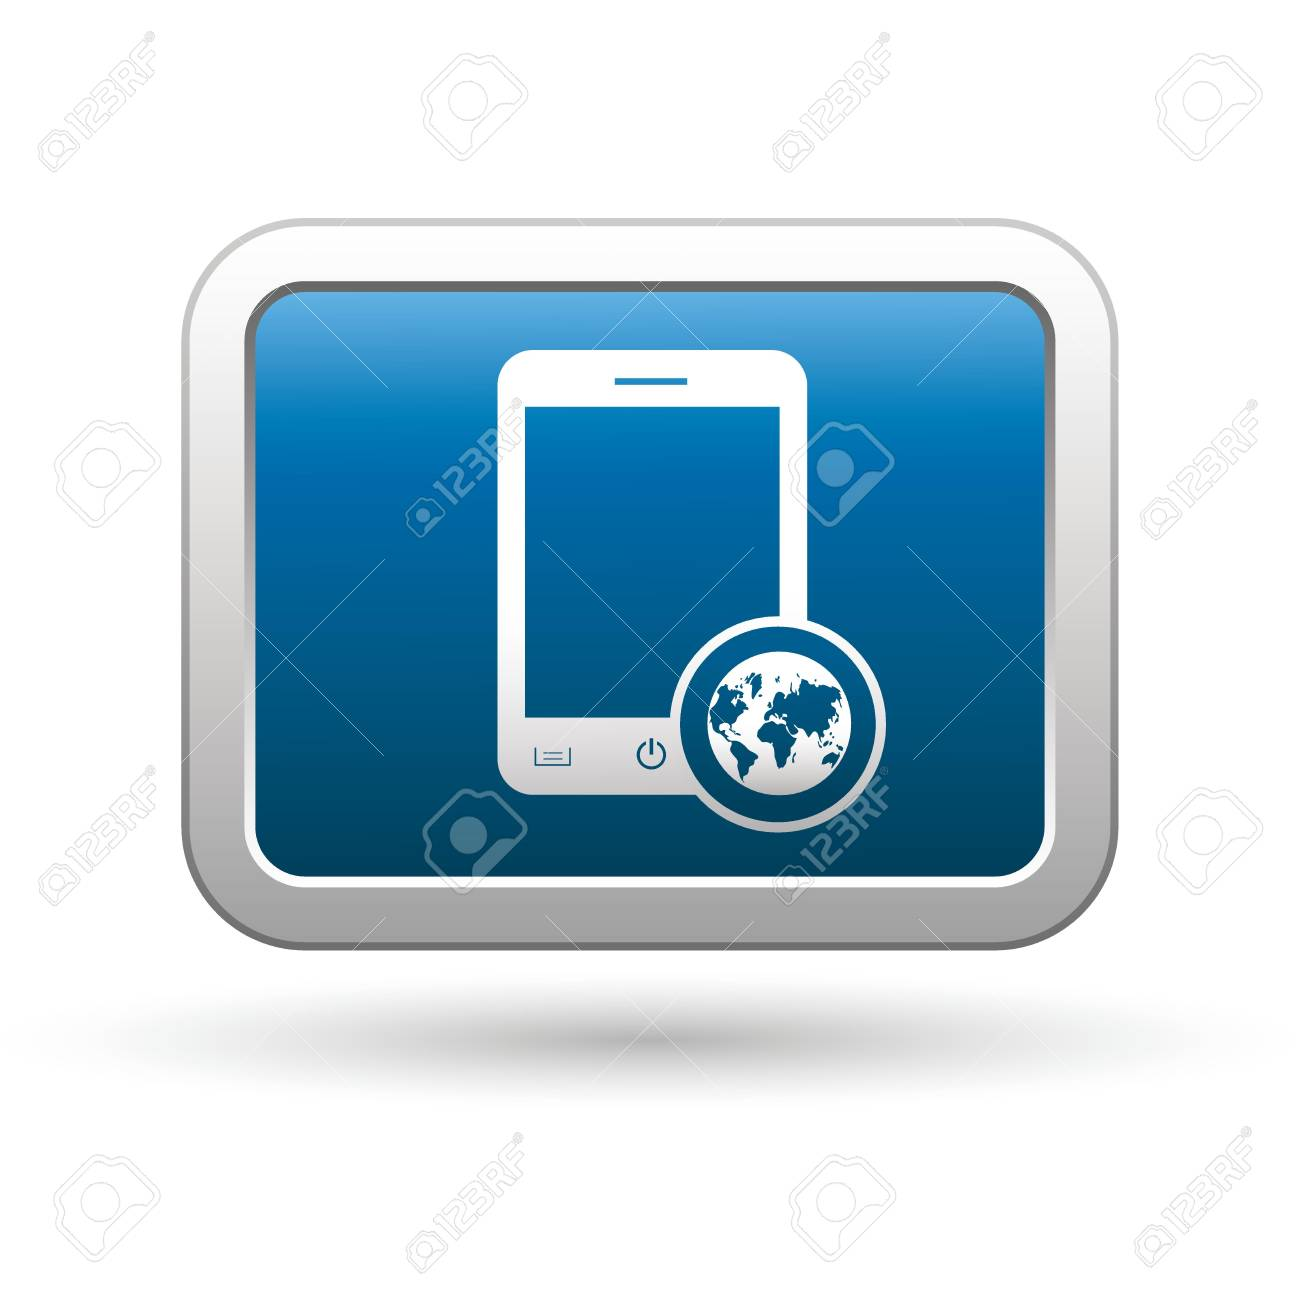 Phone with map menu icon on the blue with silver rectangular button  illustration Stock Vector - 18699972